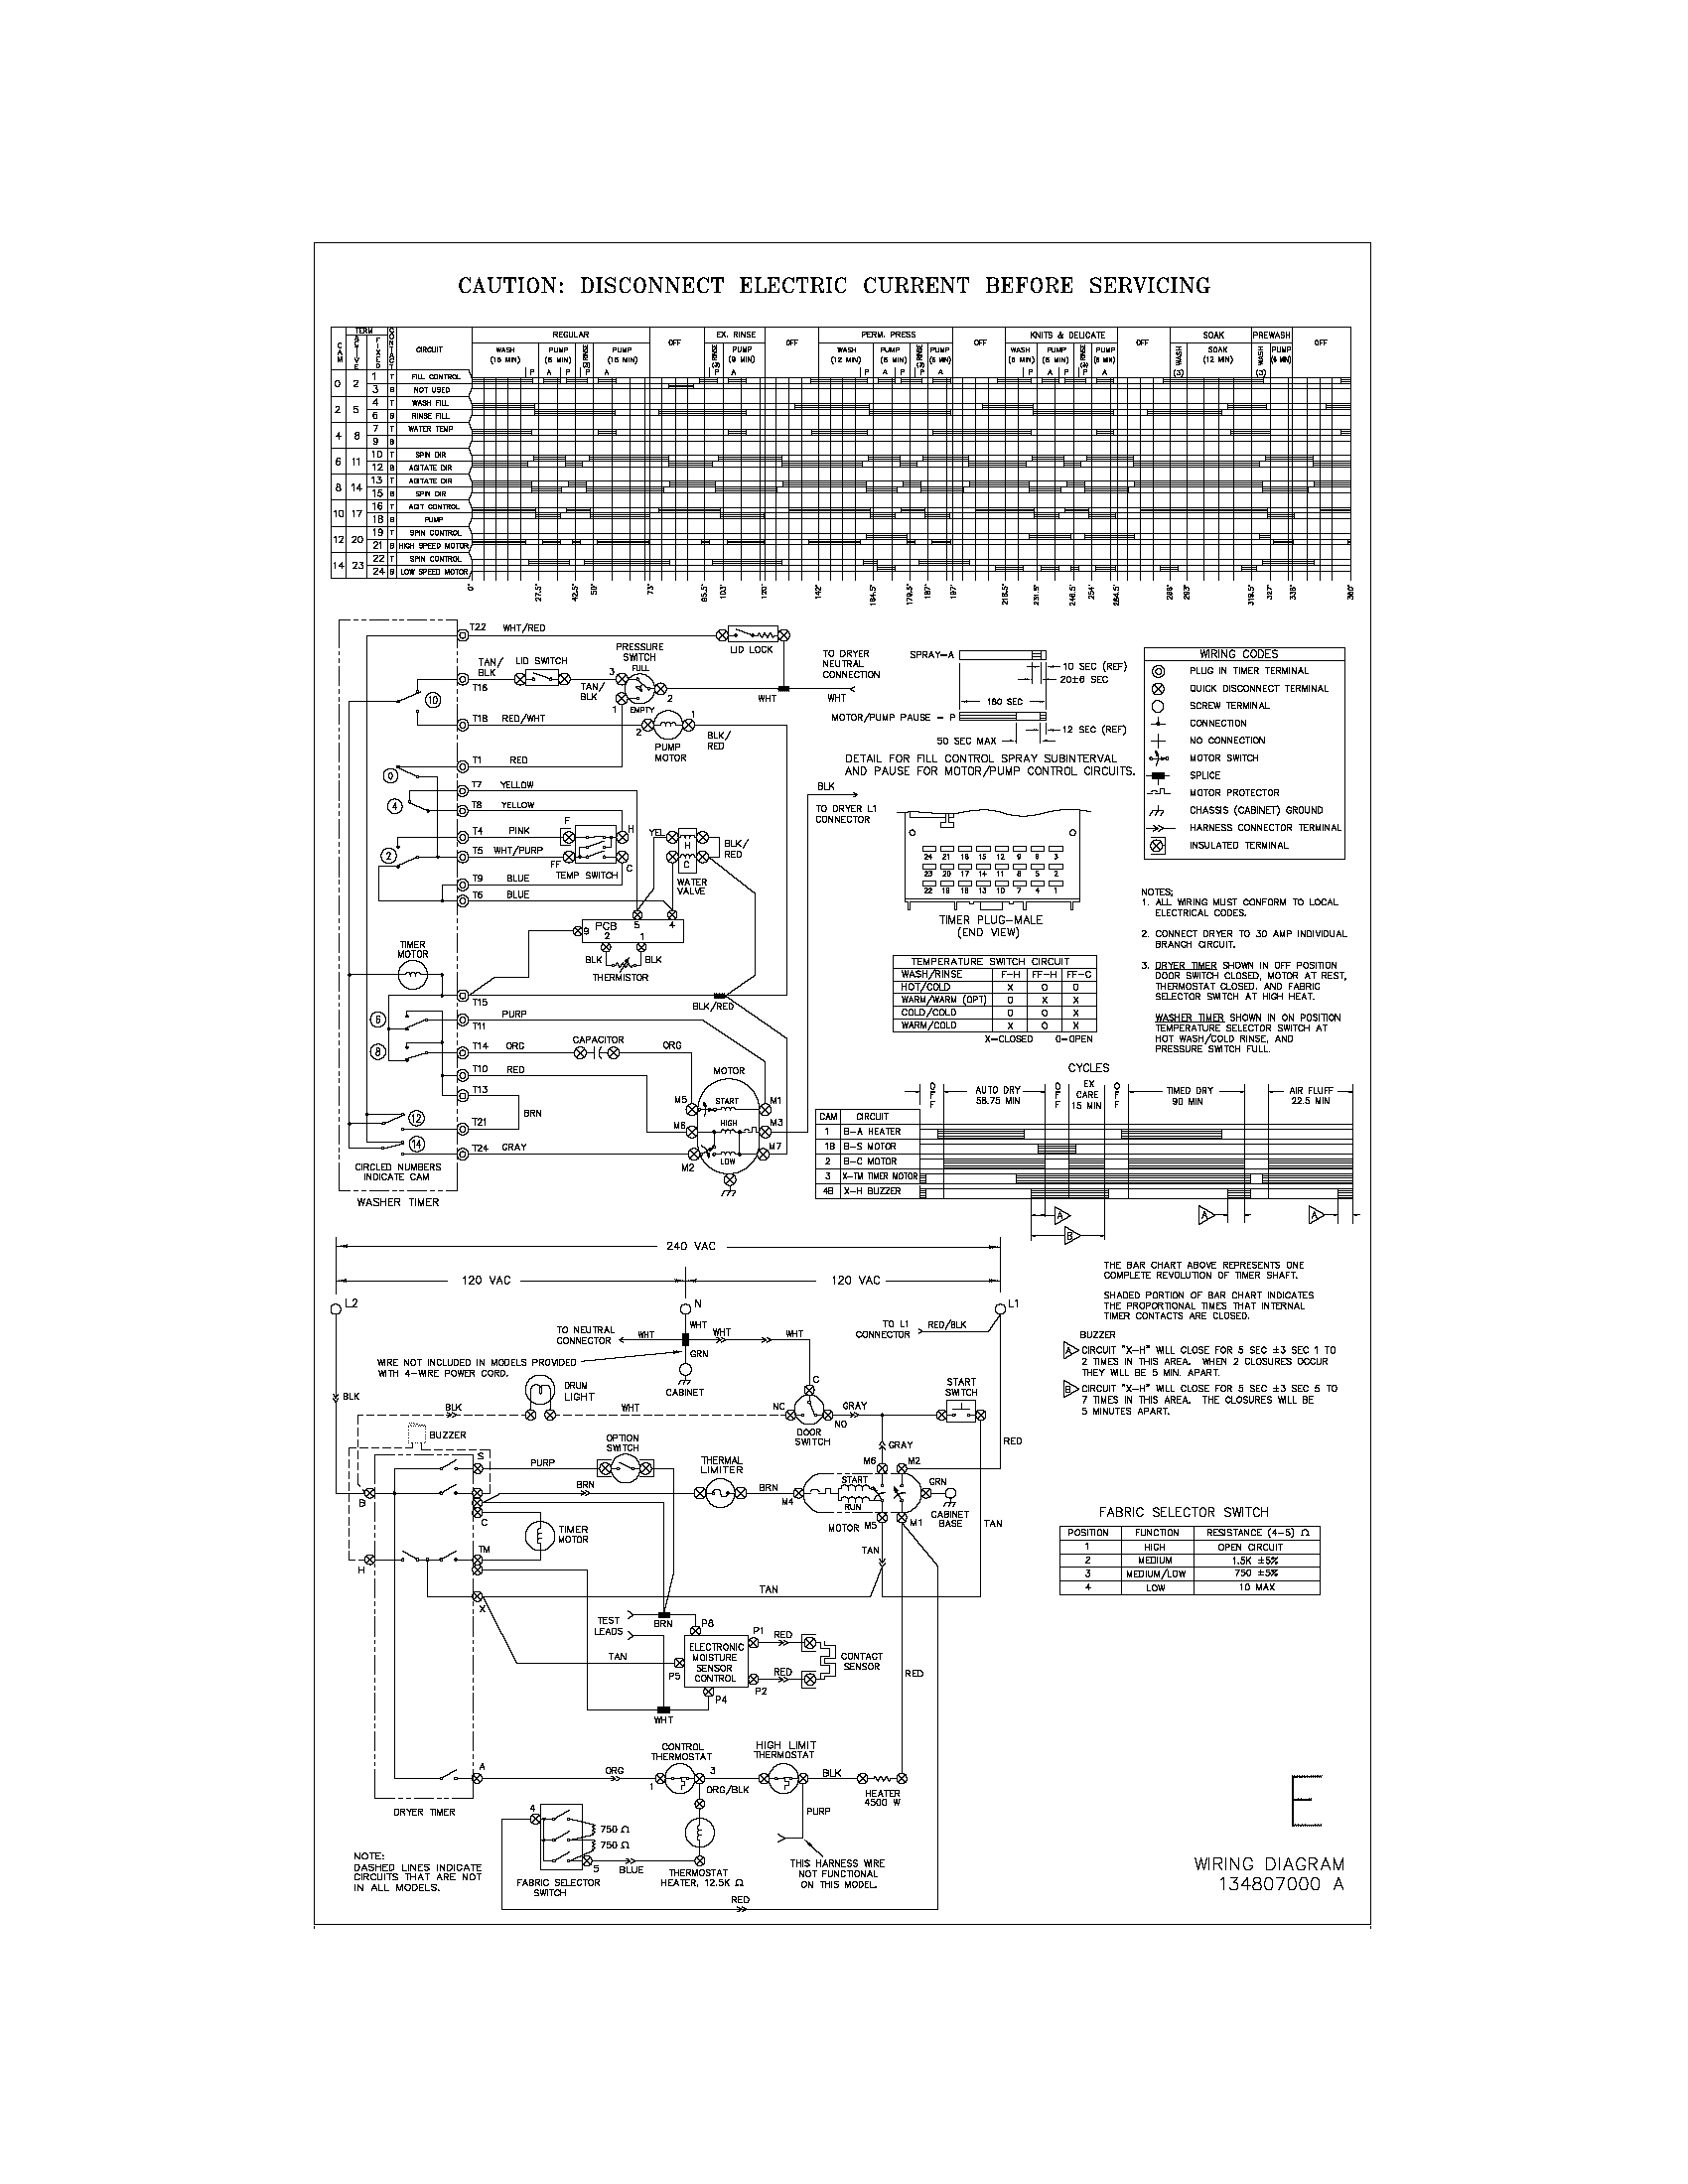 kenmore laundry center wiring diagram 411 amps volts switch n kenmore model 110 diagram kenmore laundry [ 1700 x 2200 Pixel ]